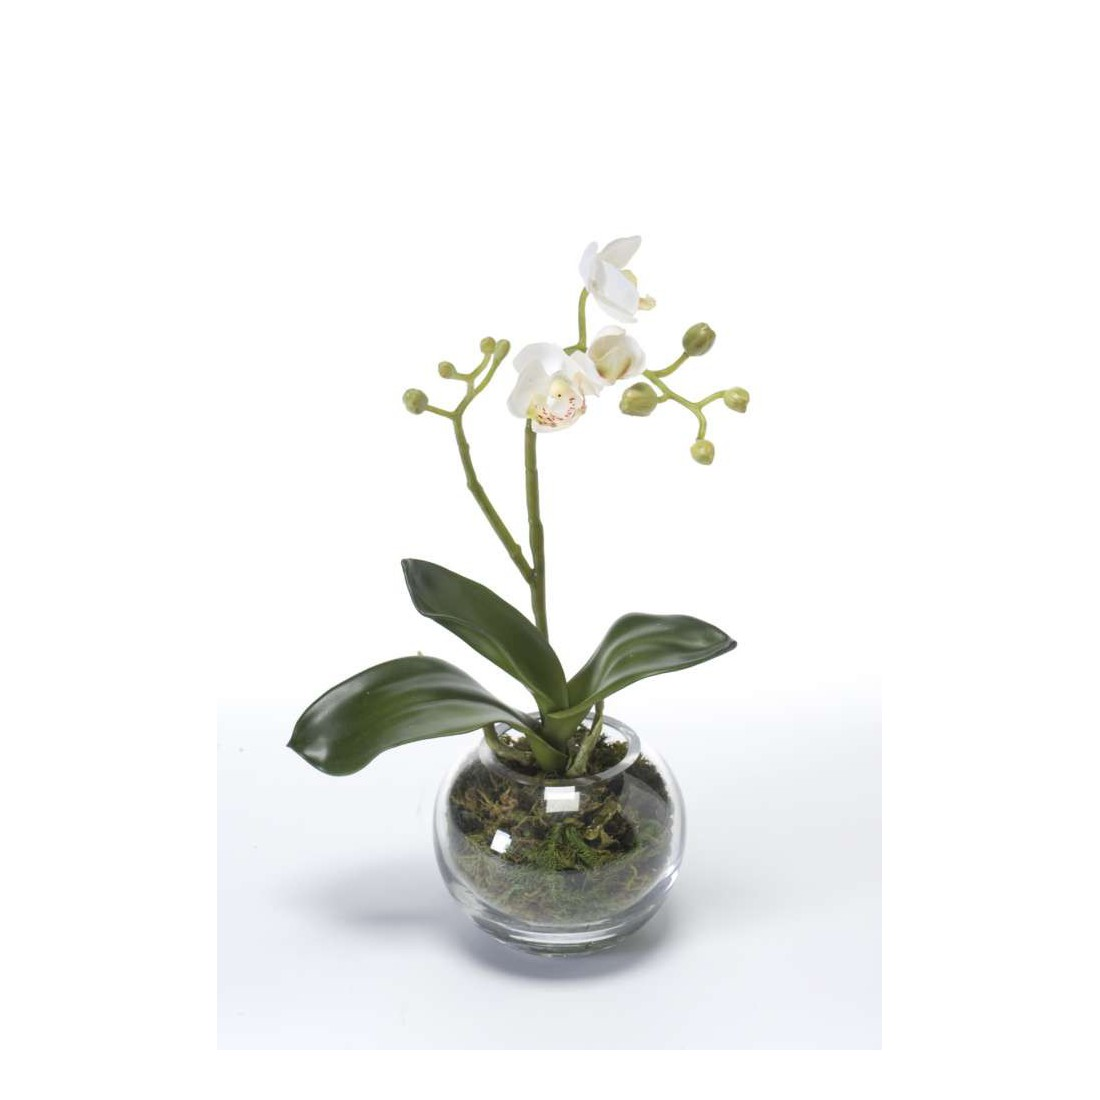 phalaenopsis orchidee artificielle en pot verre 29 cm compositions artificielles. Black Bedroom Furniture Sets. Home Design Ideas